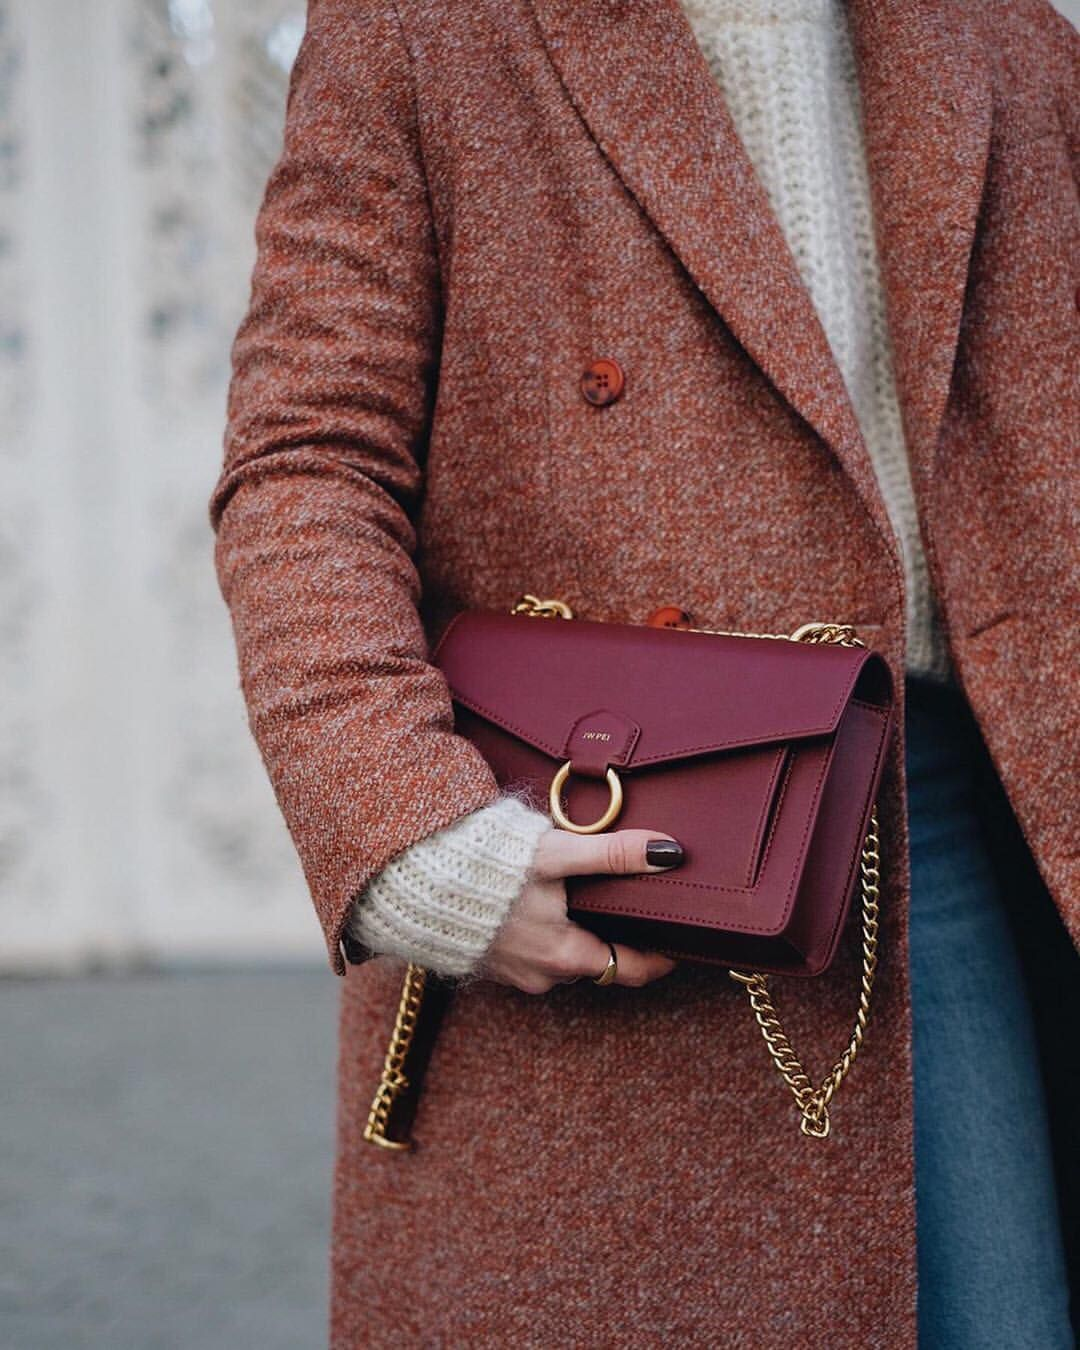 Friday By Jw Pei Fridaybyjwpei On Instagram Back To Layers Photo By Katekavakloglou Winter Purses Red Bags Crossbody